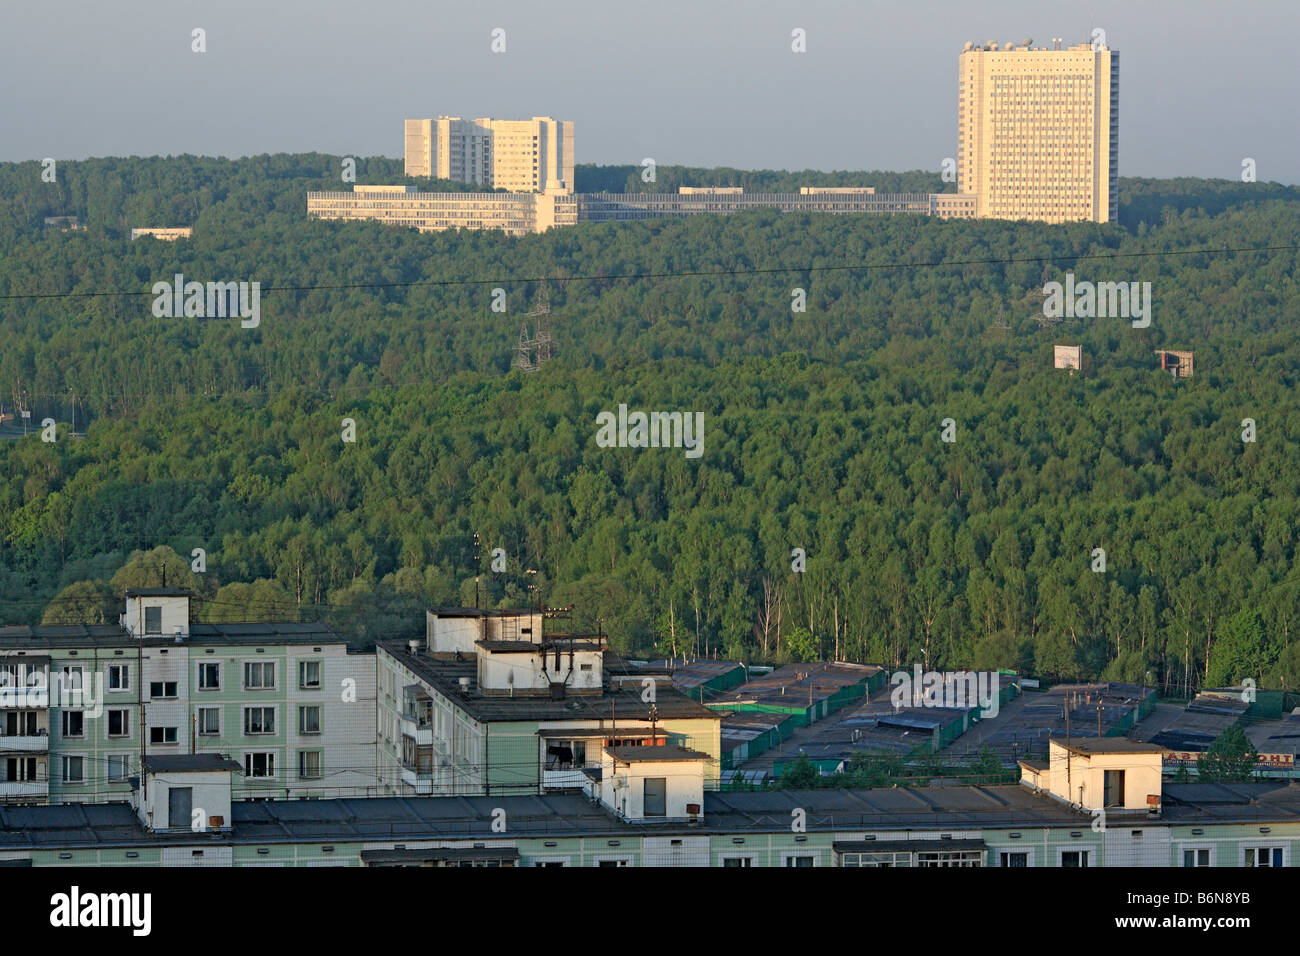 1980s apartment buildings and headquarters of Russian intelligence service, Moscow, Russia - Stock Image